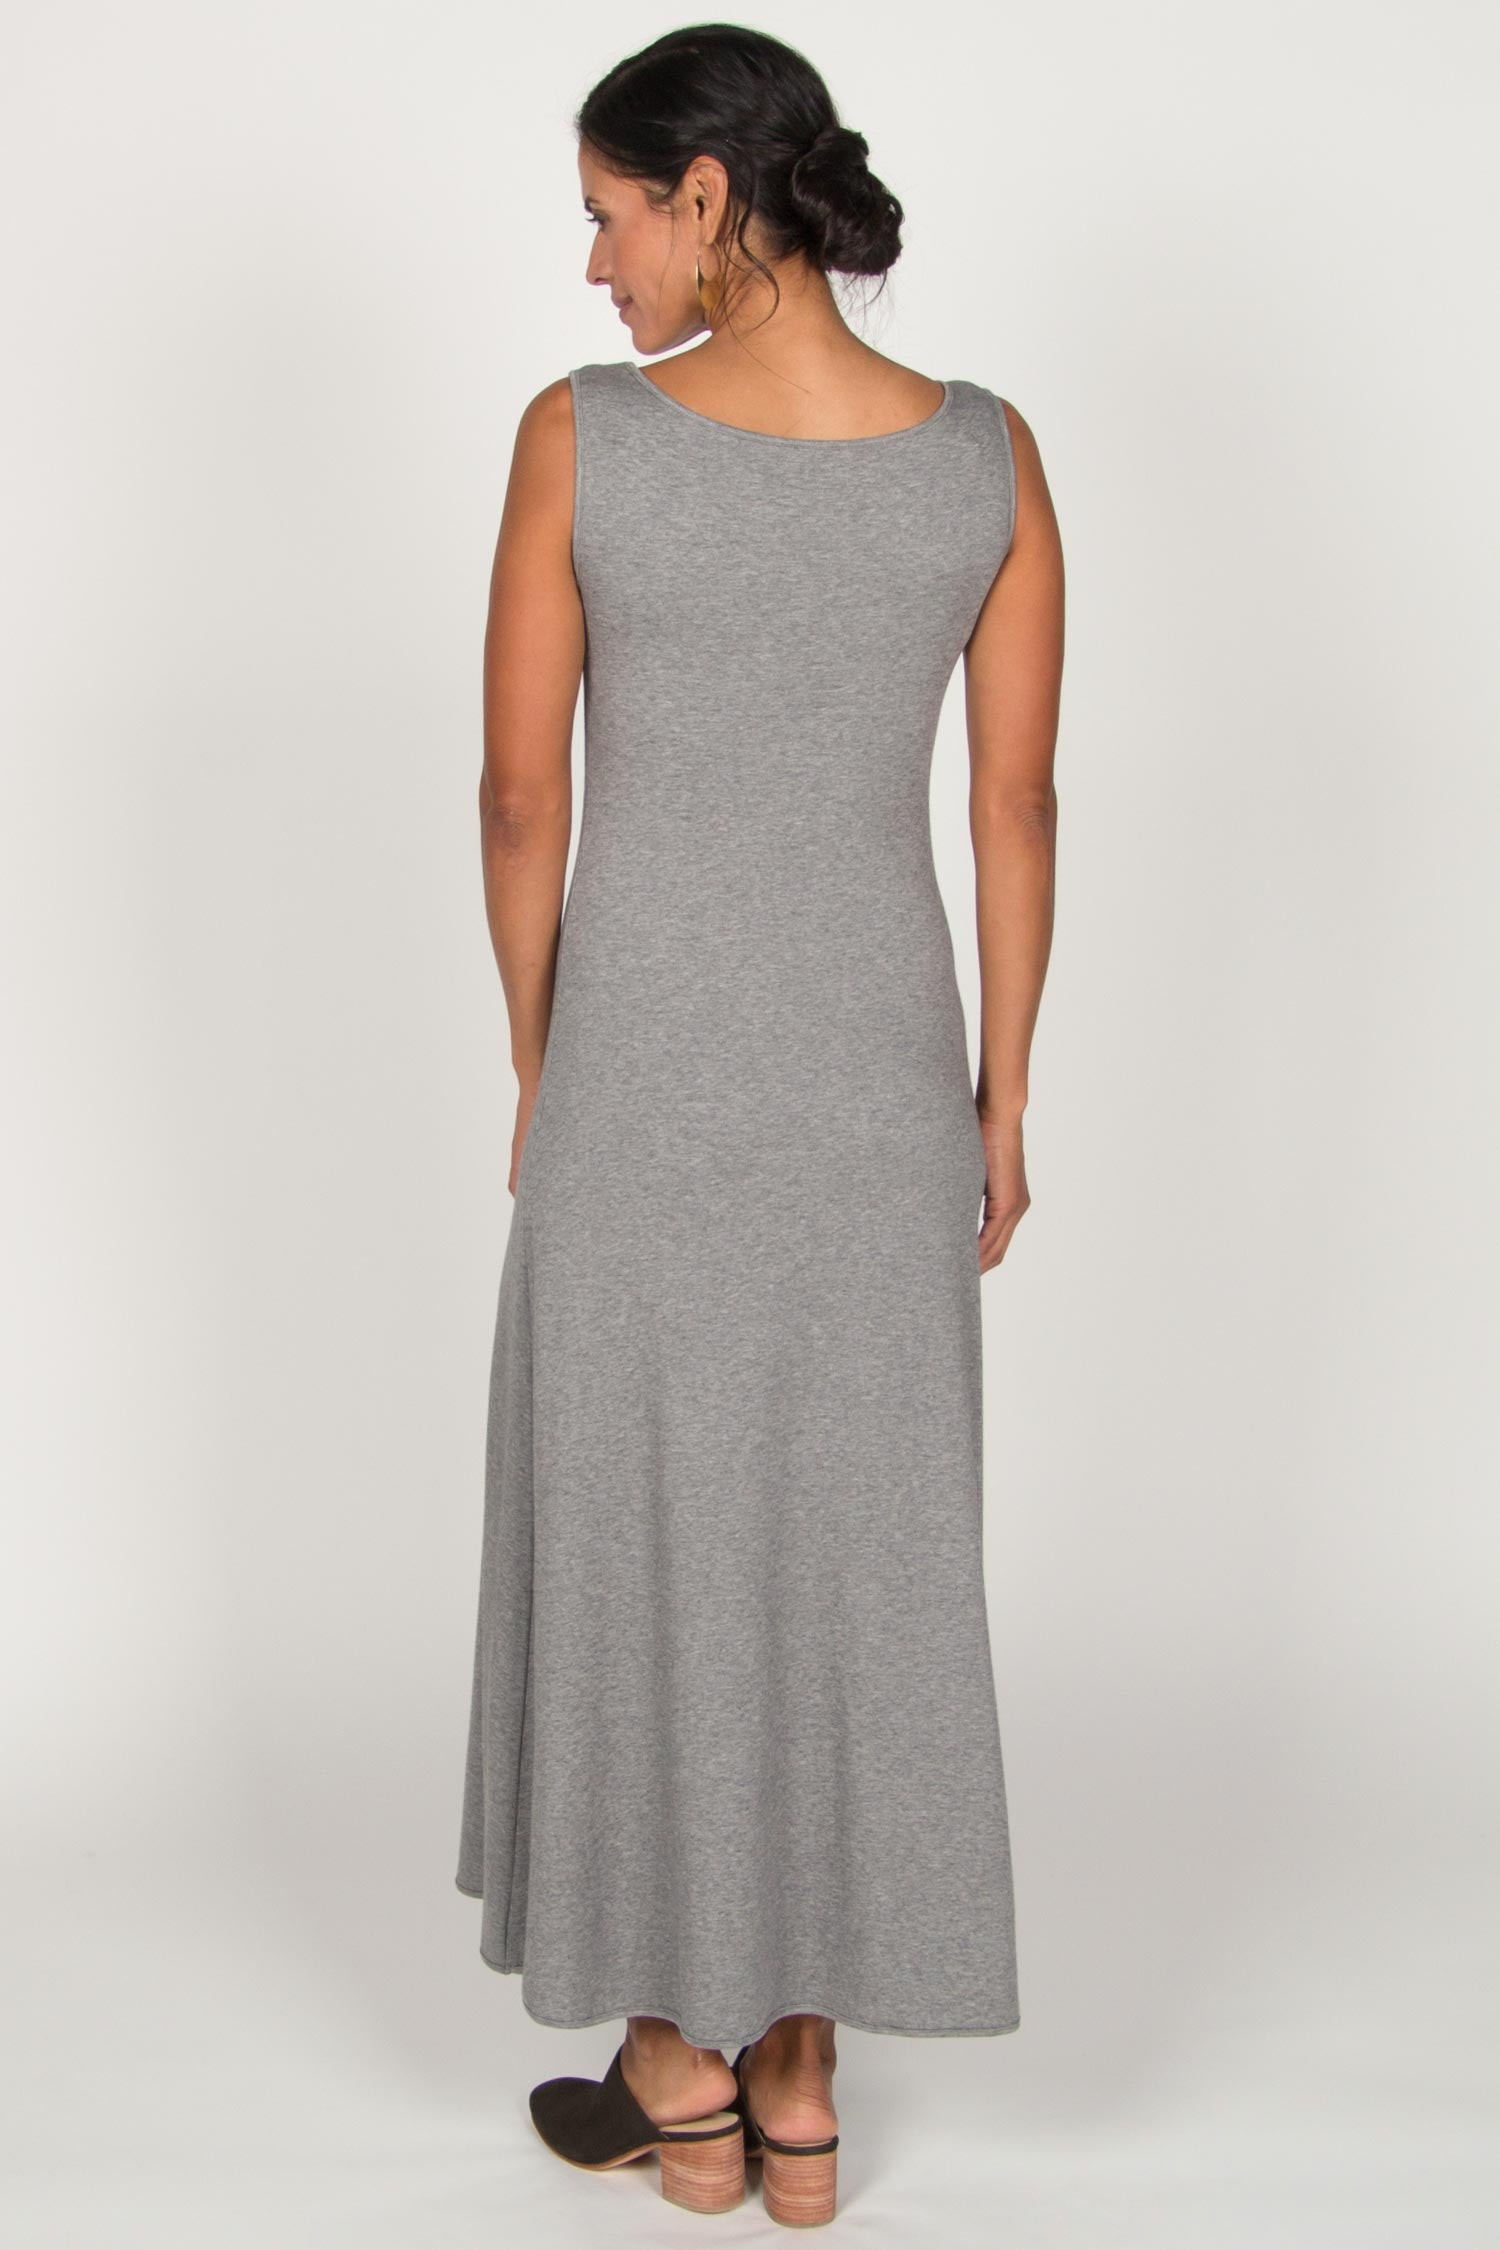 Womens Boatneck Maxi Dress in Gray | Ethical Fashion